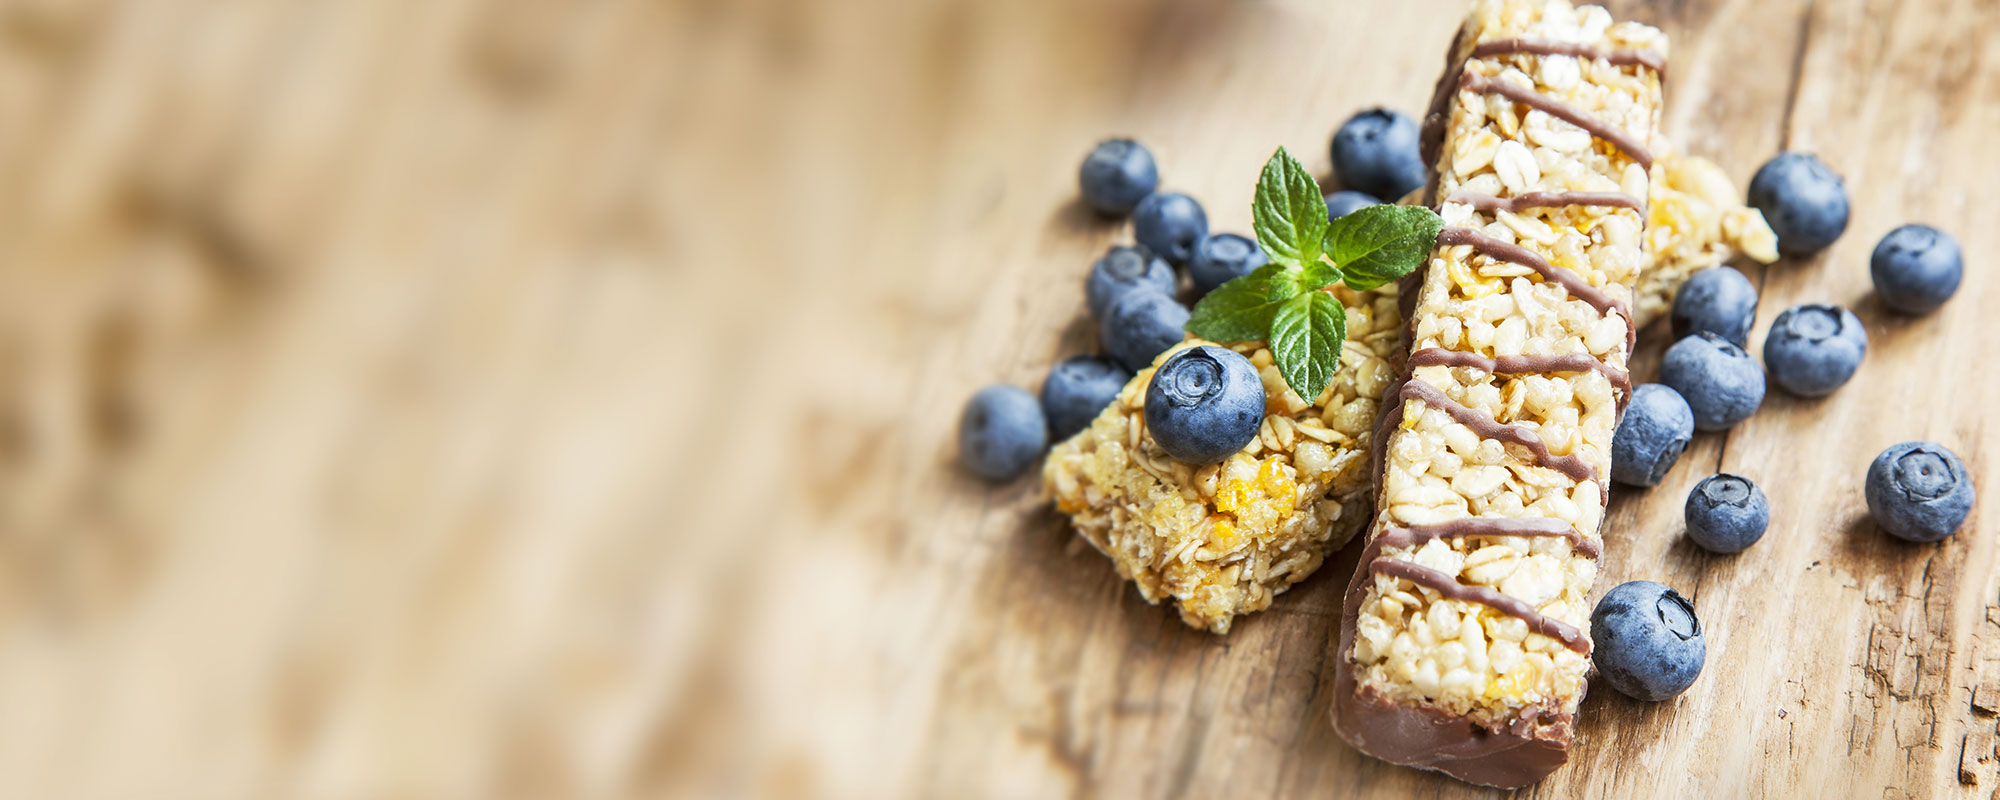 Healthy granola bars with blueberries for a tasty snack